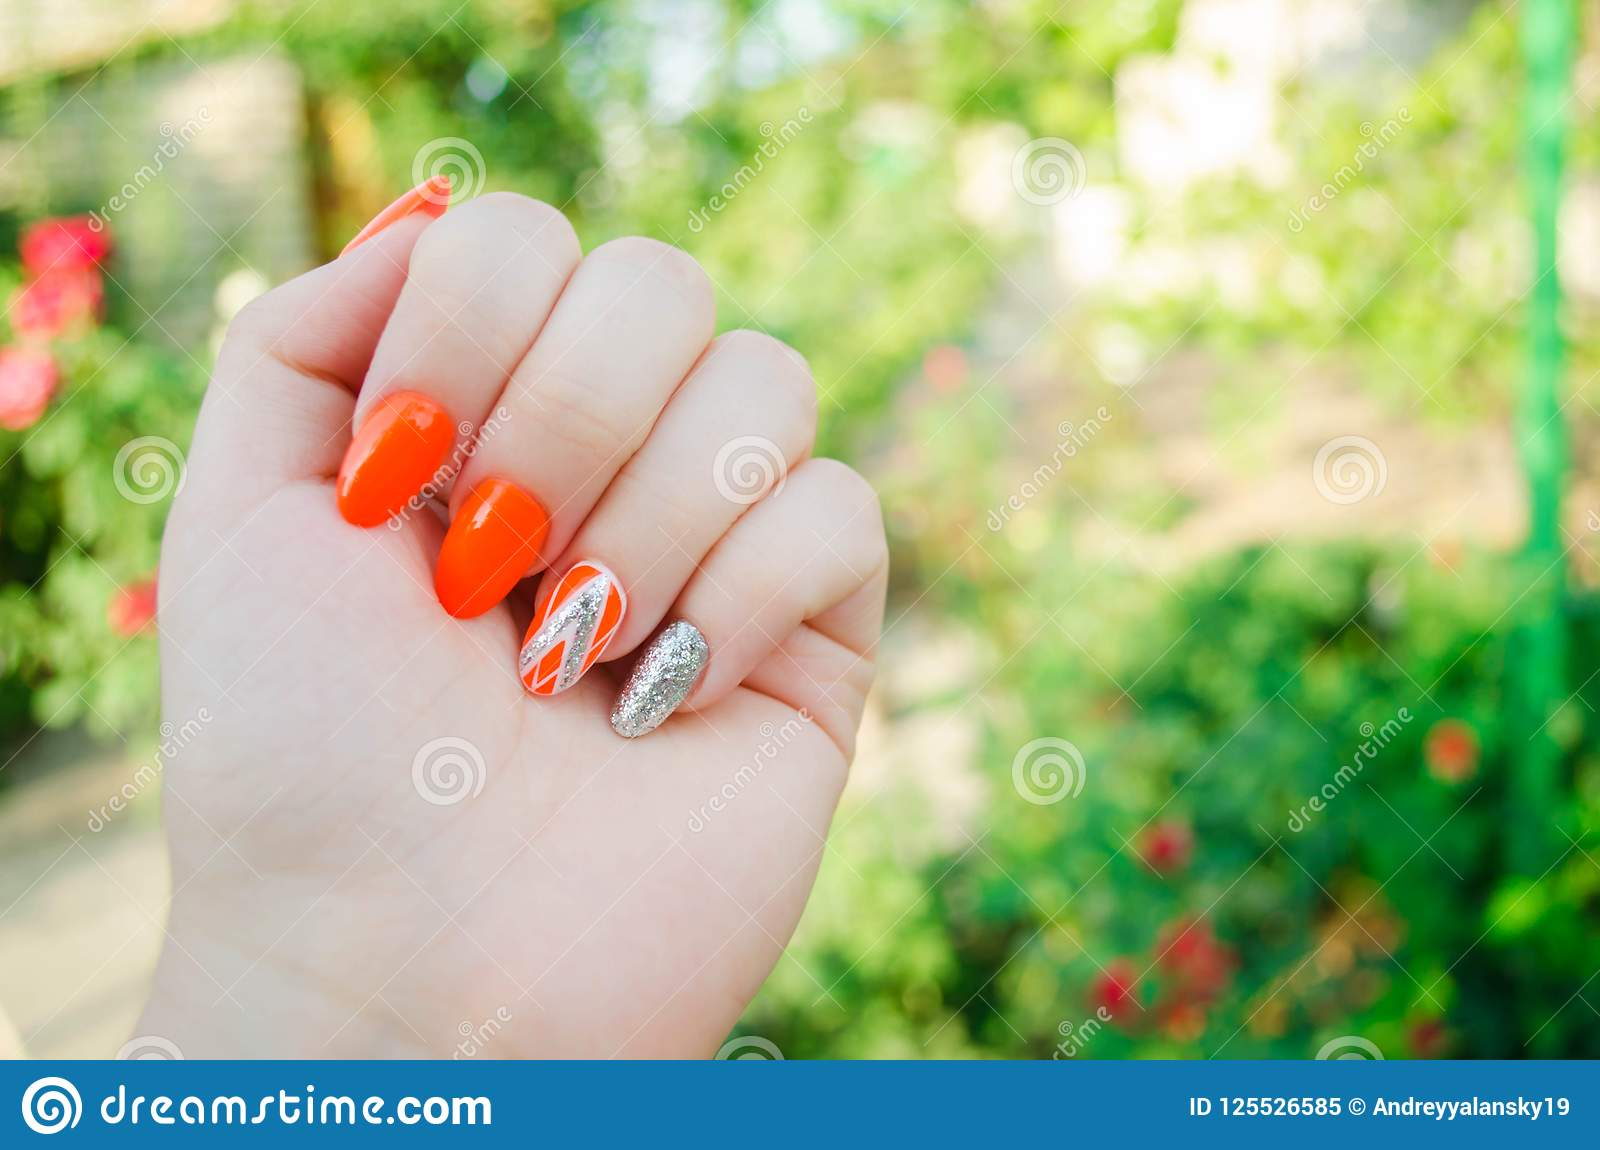 Perfect manicure and natural nails. Attractive modern nail art design. orange autumn design. long well-groomed nails